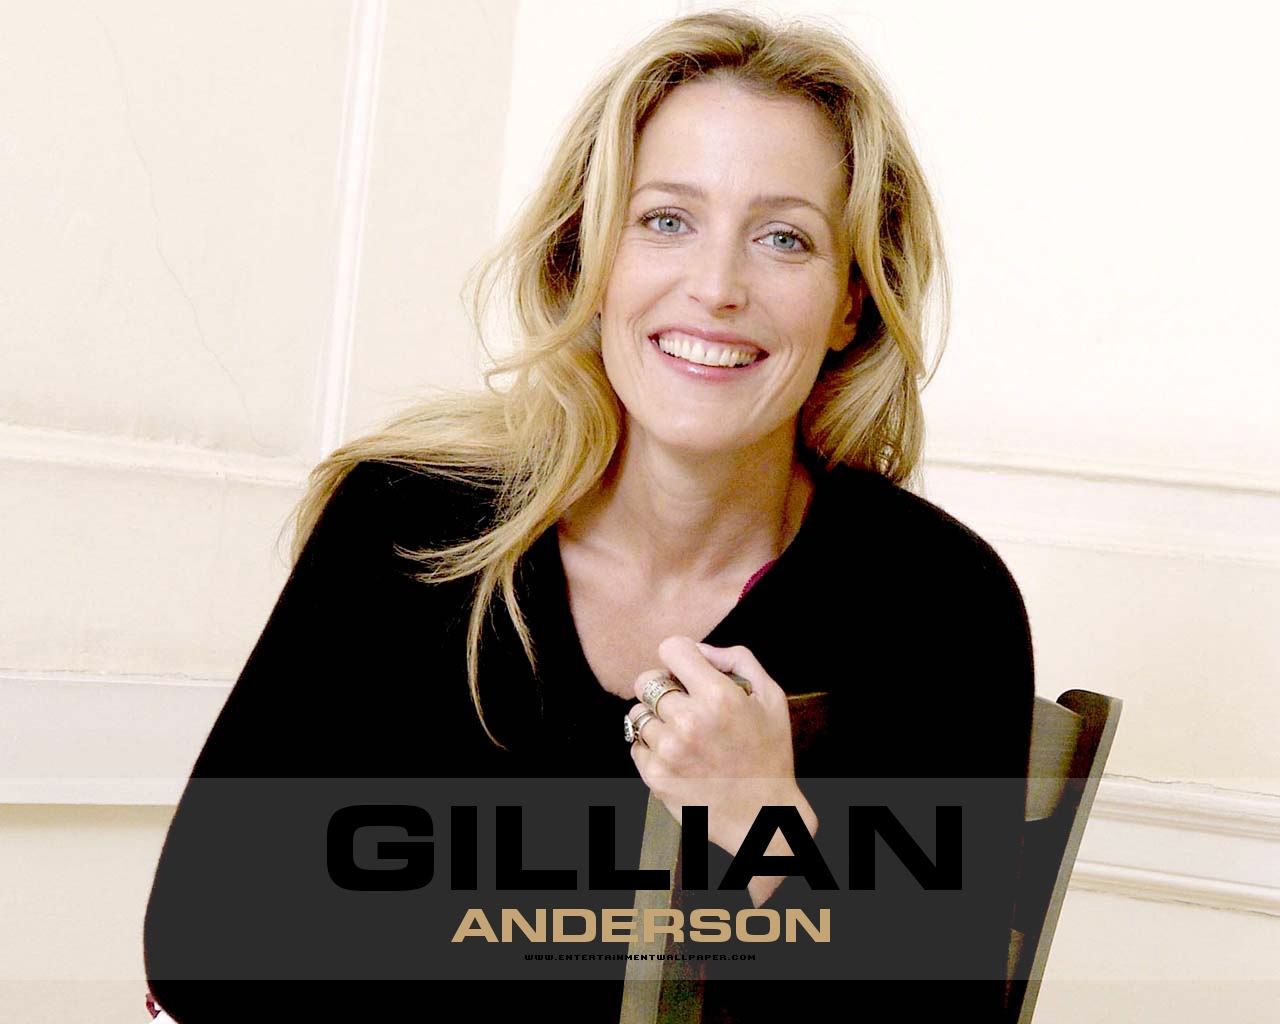 1280x1024 - Gillian Anderson Wallpapers 7